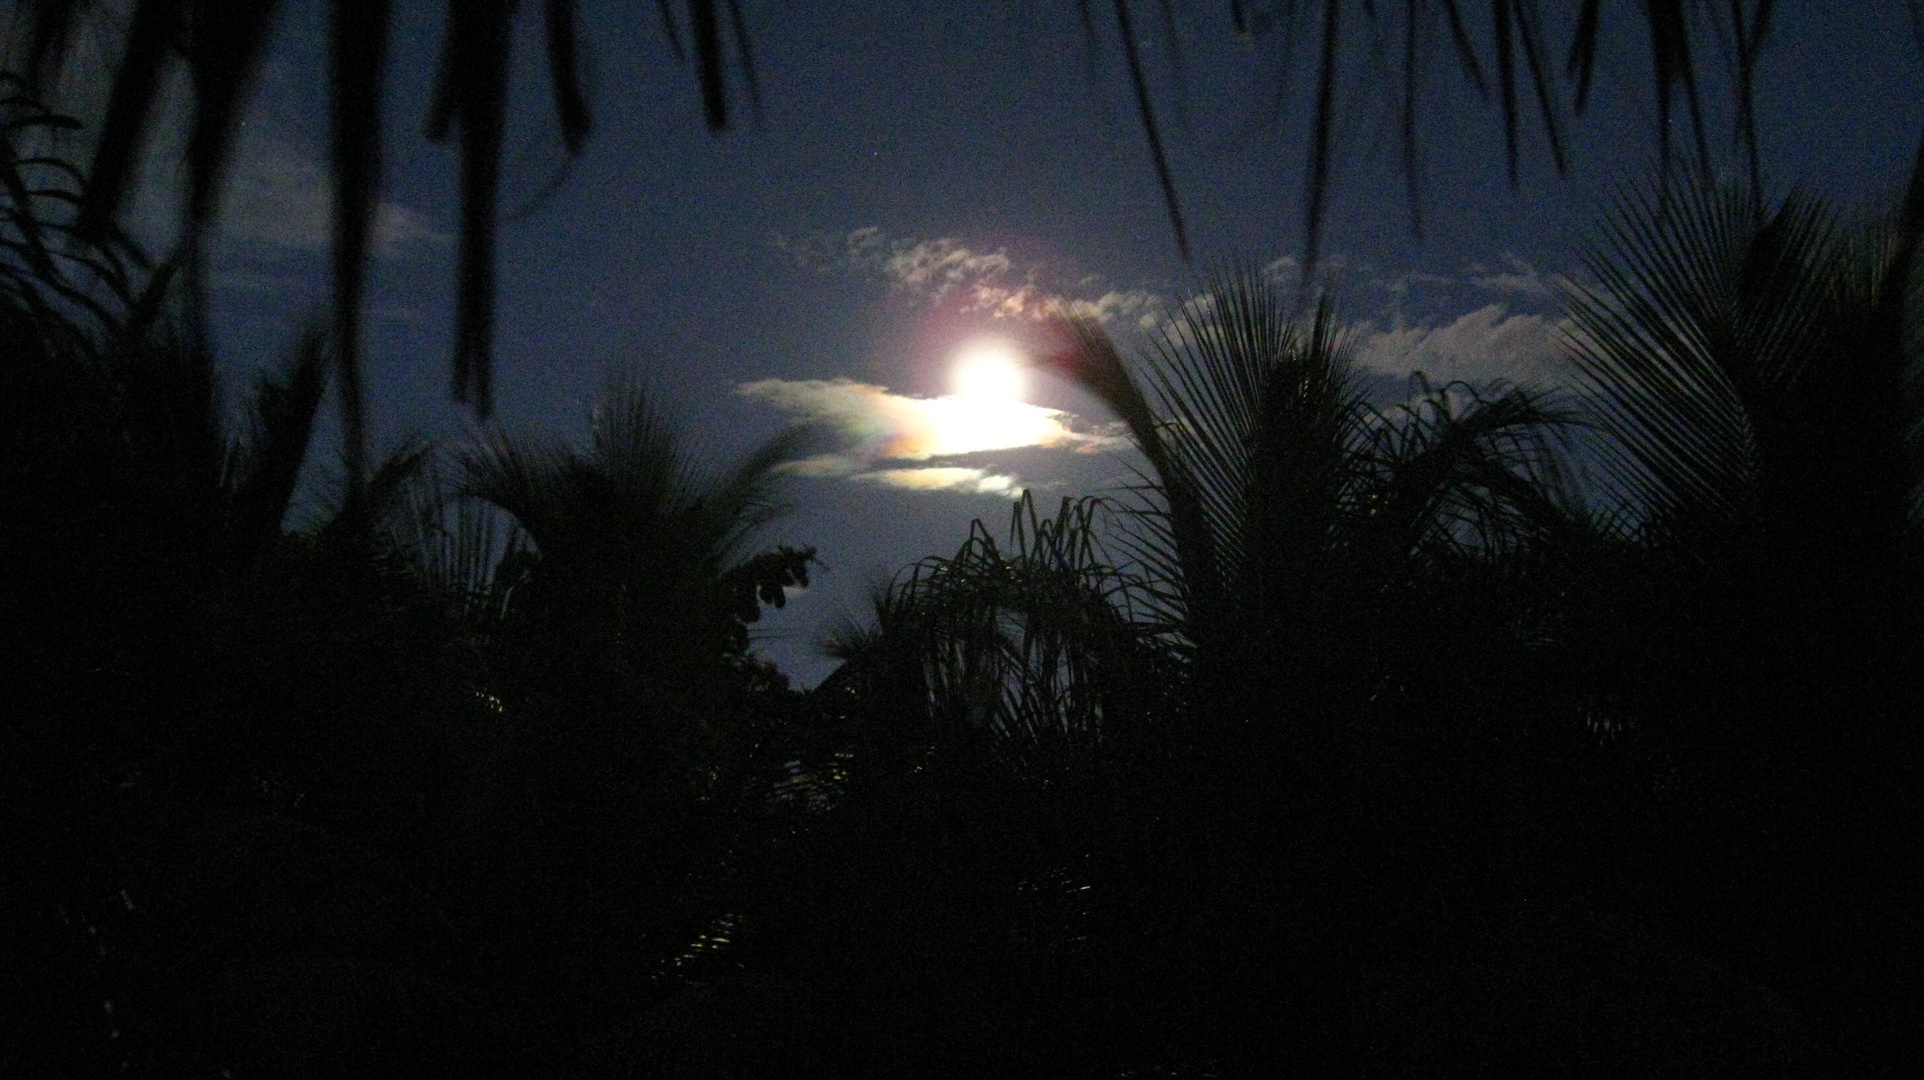 Nacht in Costa Rica